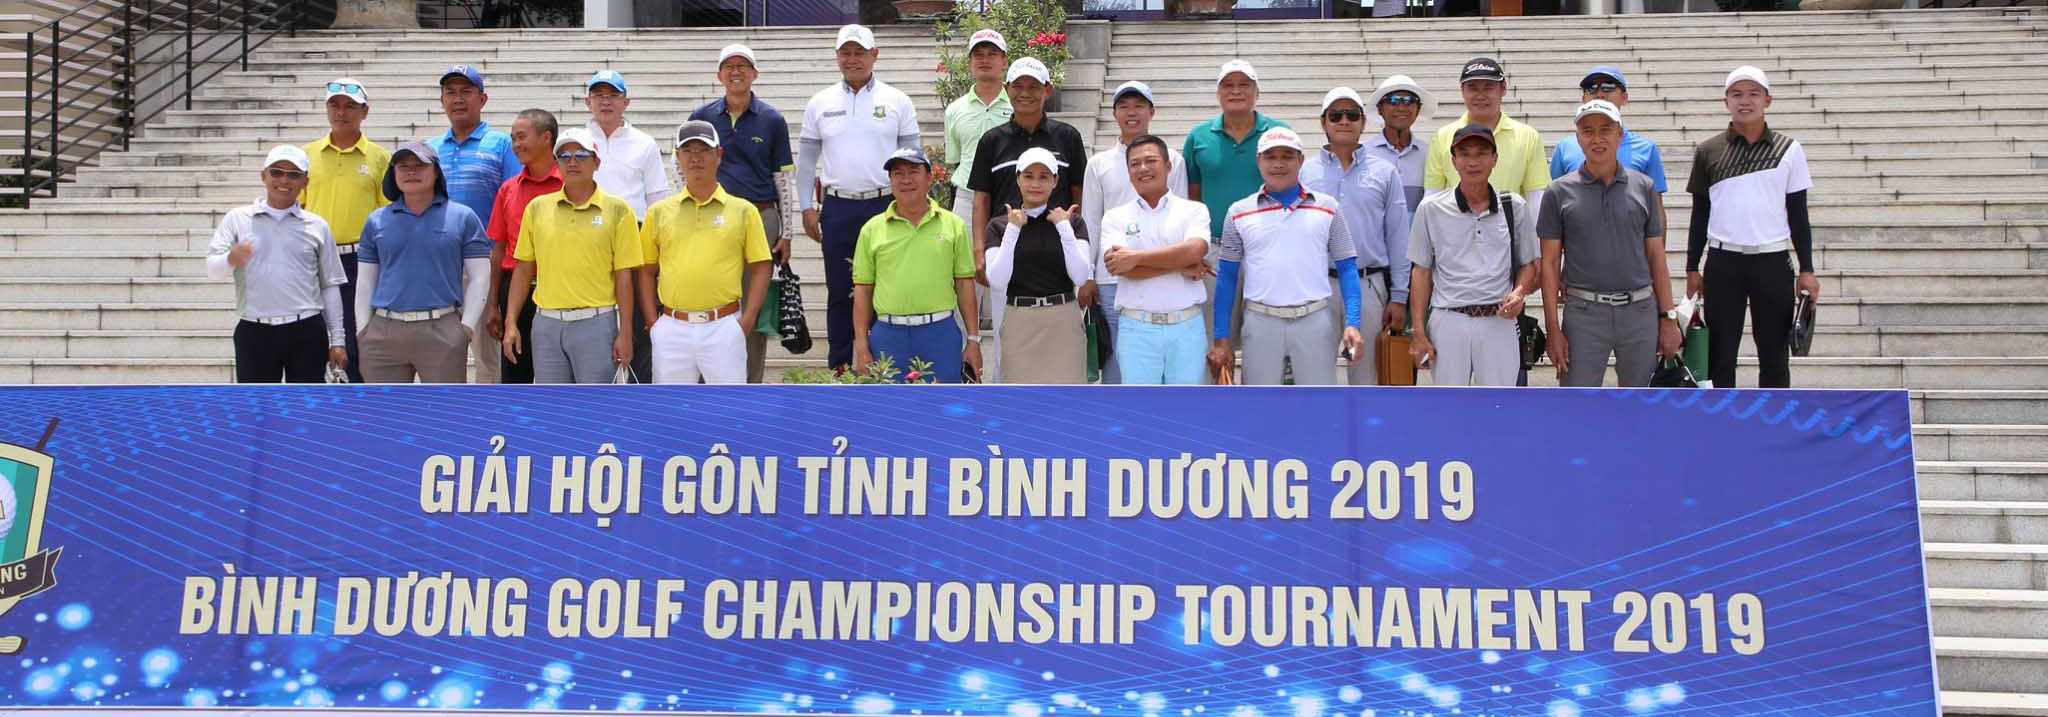 BINH DUONG GOLF ASSOCIATION on Friday, June 21st , 2019